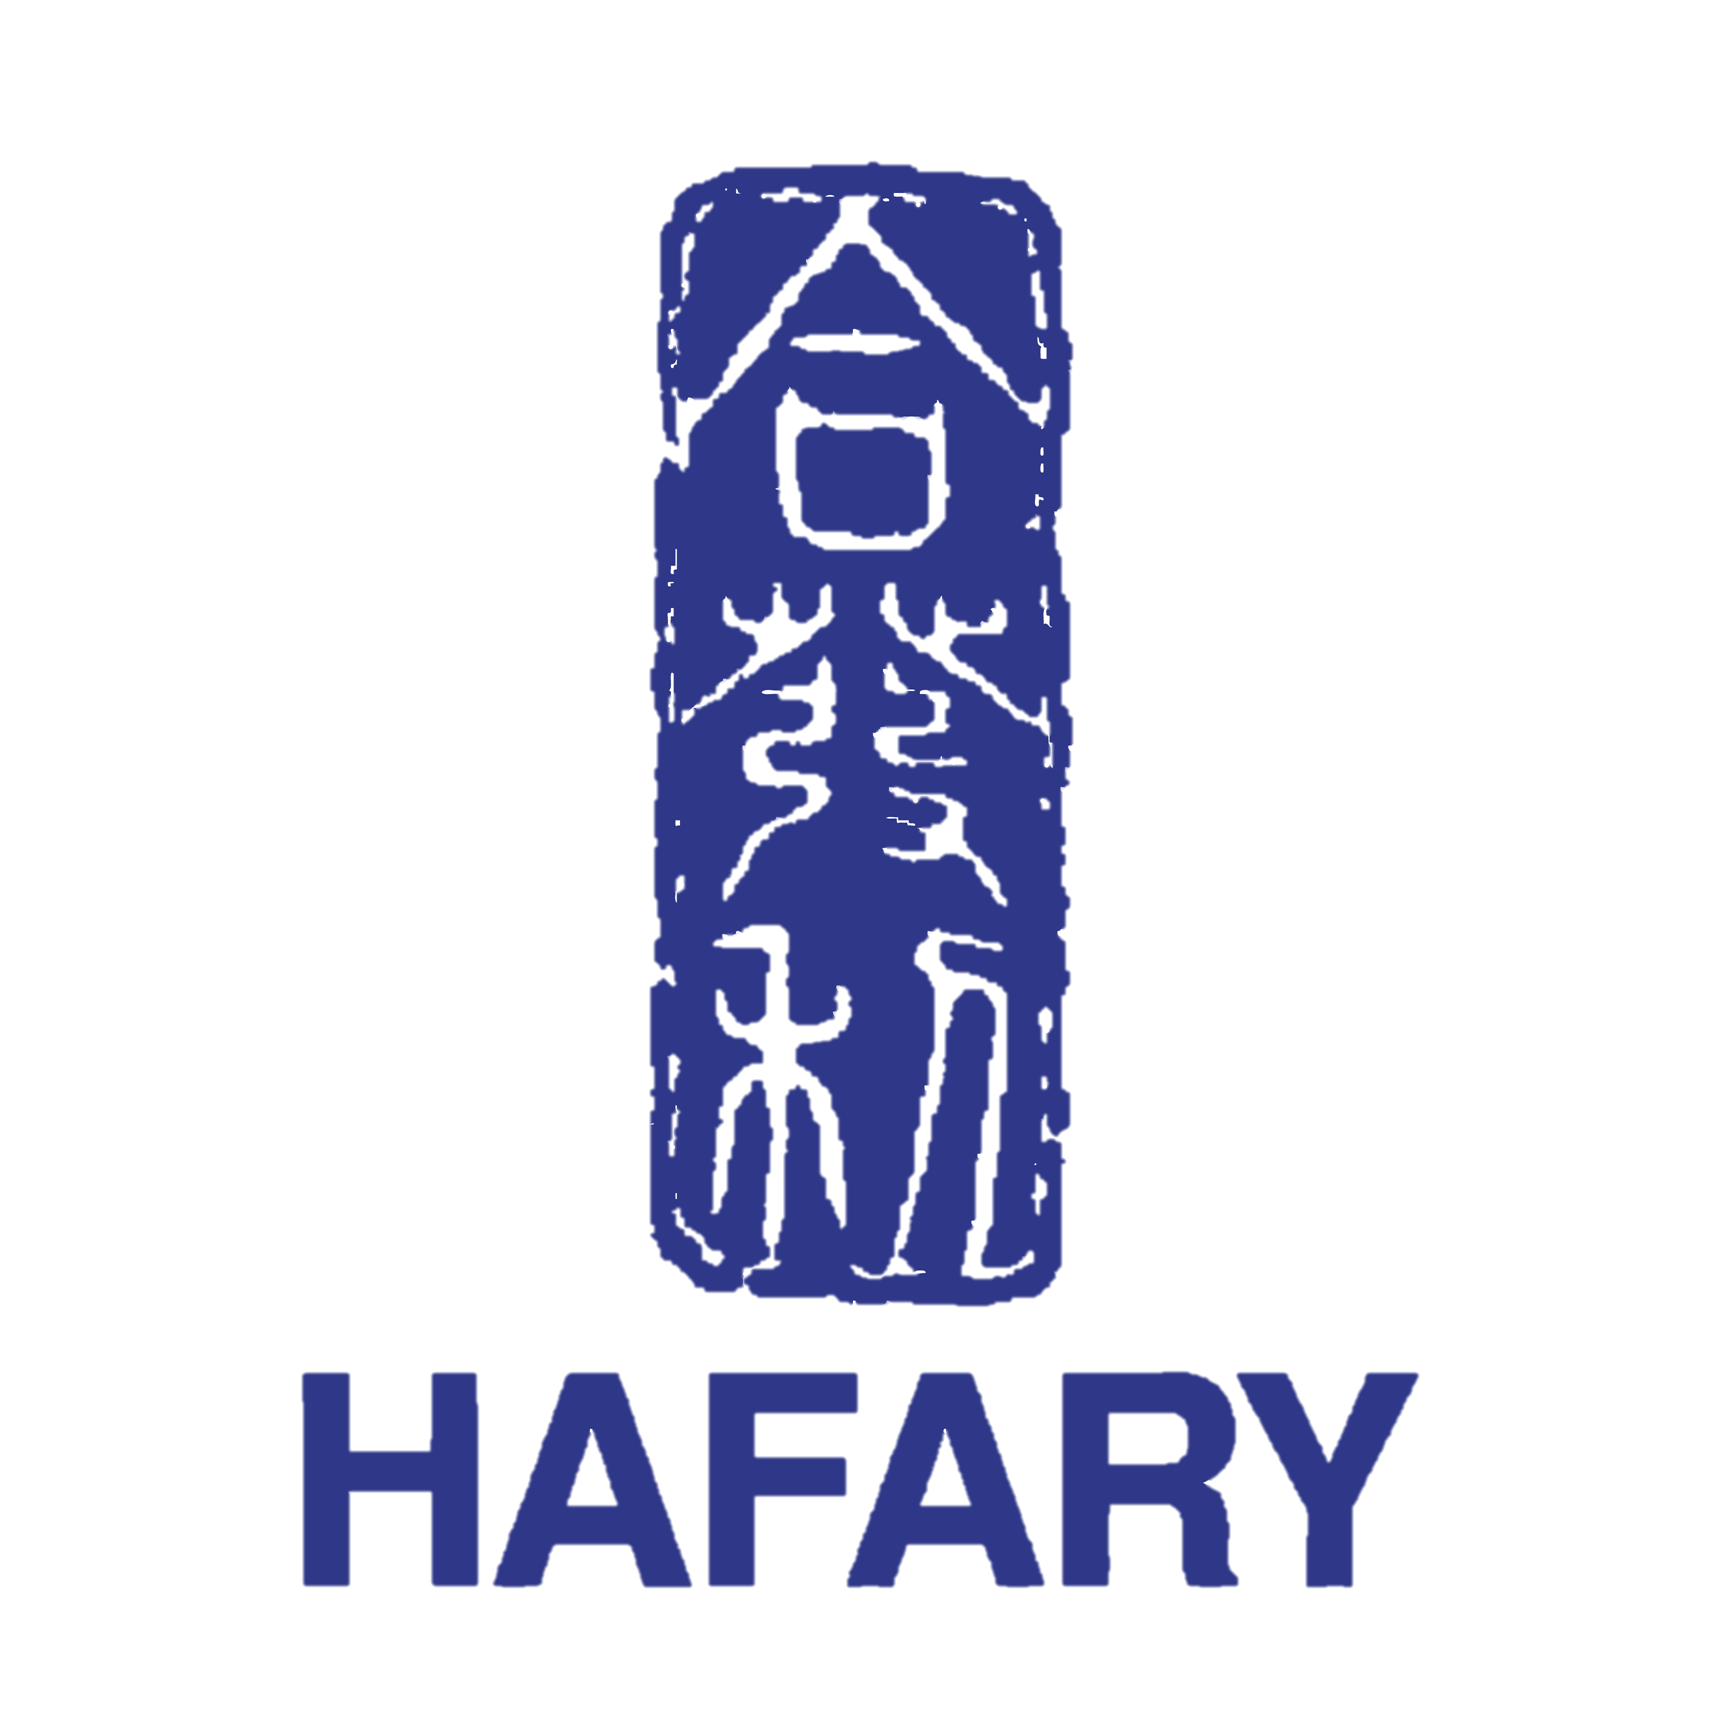 Hafary_Vertical (coloured transparent).png